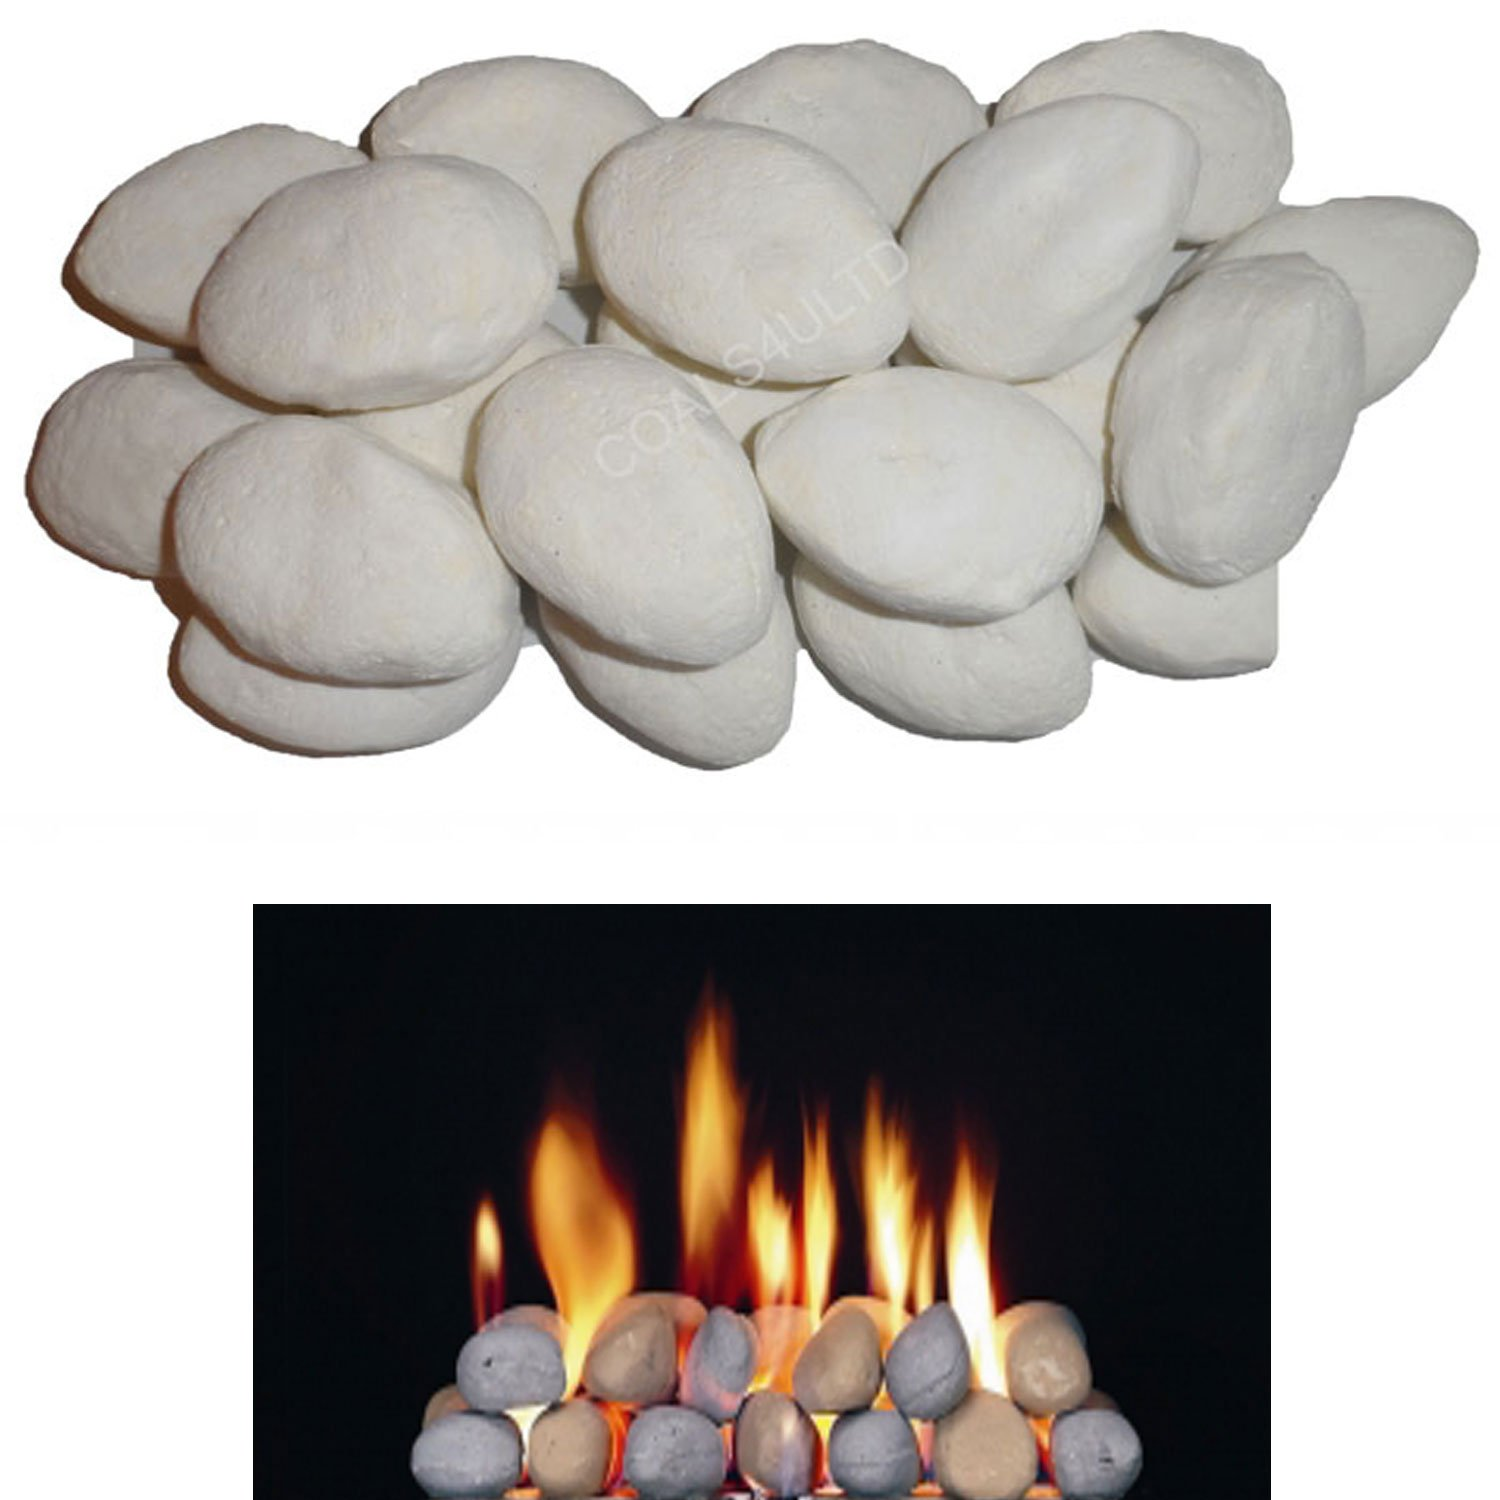 10 Gas Fire Replacement White Pebbles For Coal Fire BY COALS 4 YOU